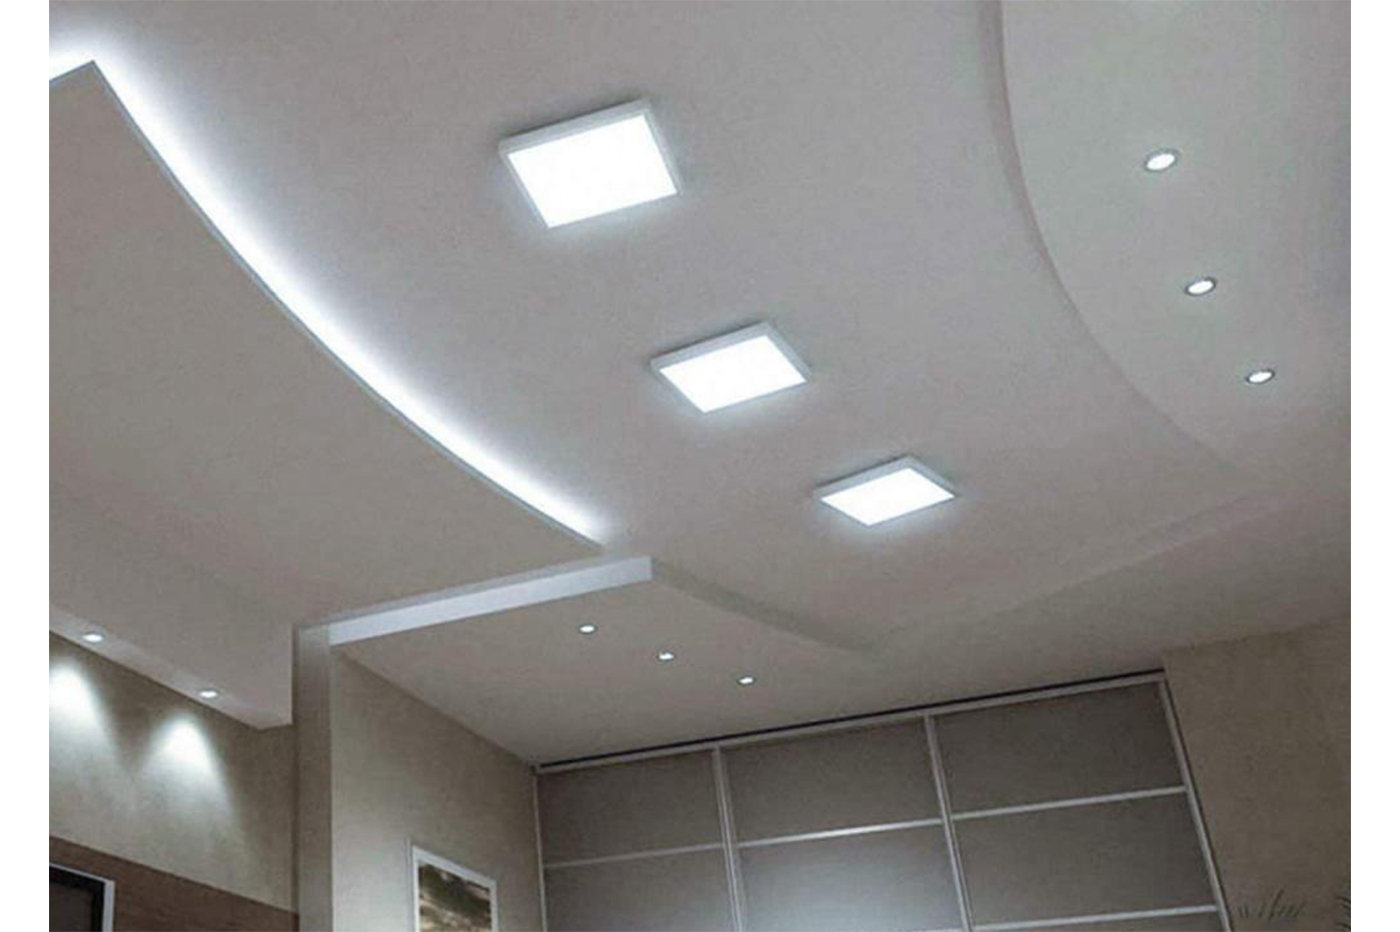 Plafoniere Bluetooth : Bes plafoniere beselettronica plafoniera soffitto led